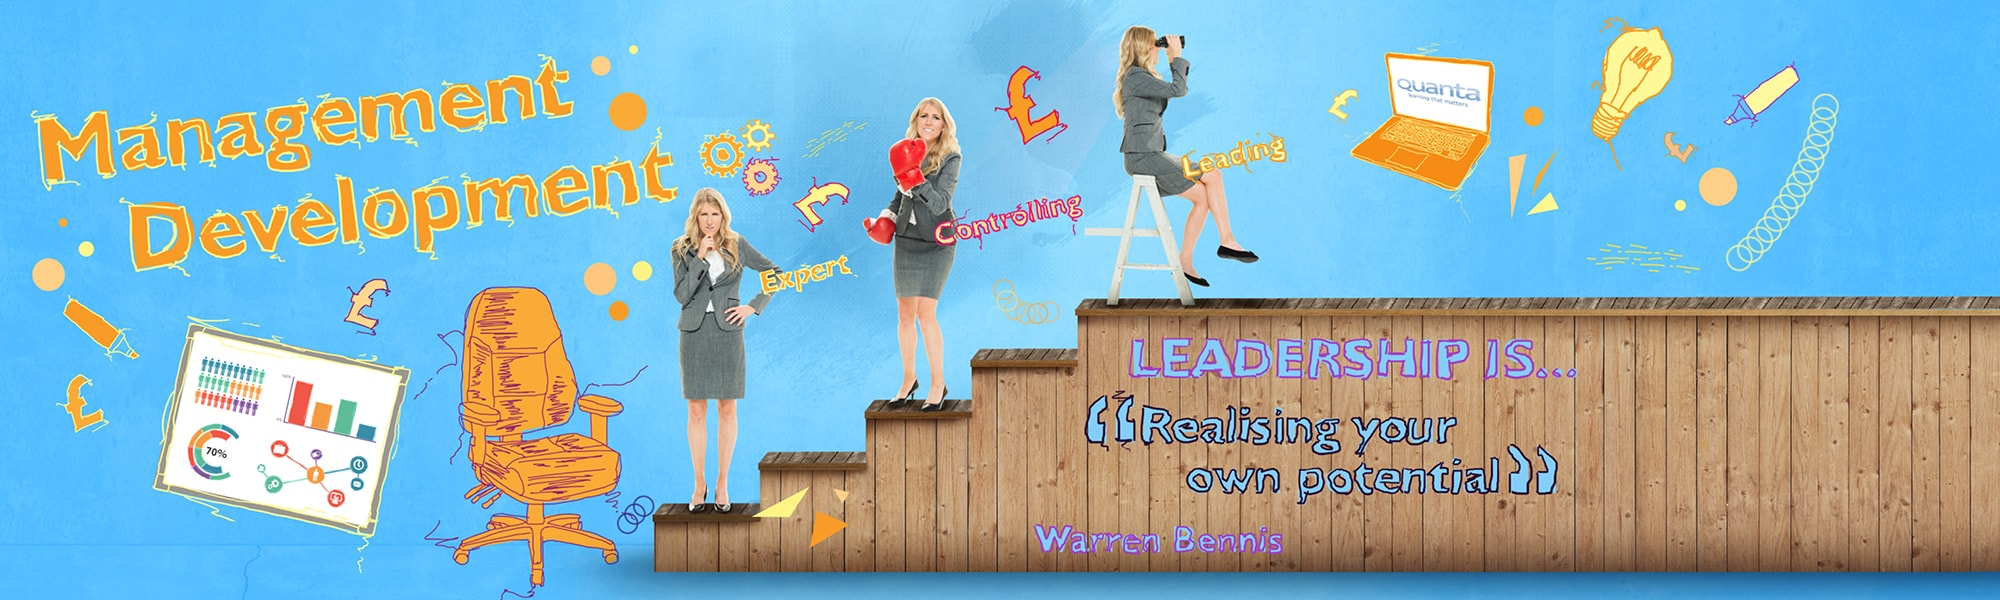 Leadership Training Banners Hospital Facility Banners